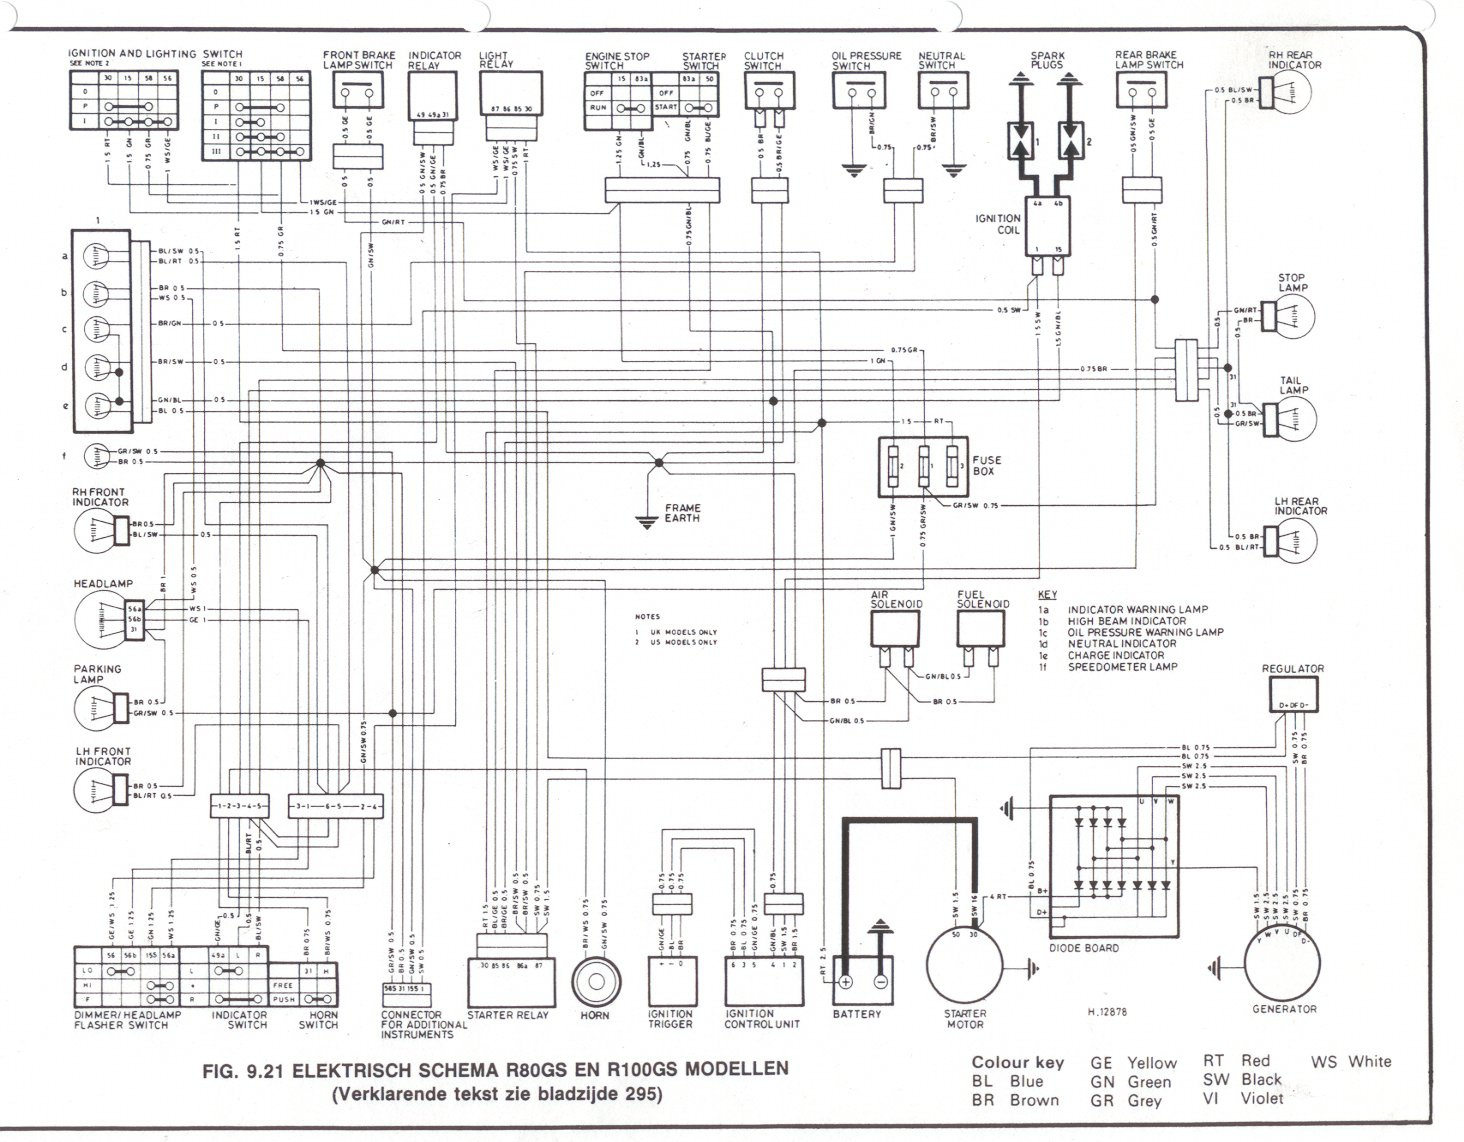 R80 100GS Schematic bmw r100 info thiel org za bmw r100rs gauge wiring diagram at cita.asia